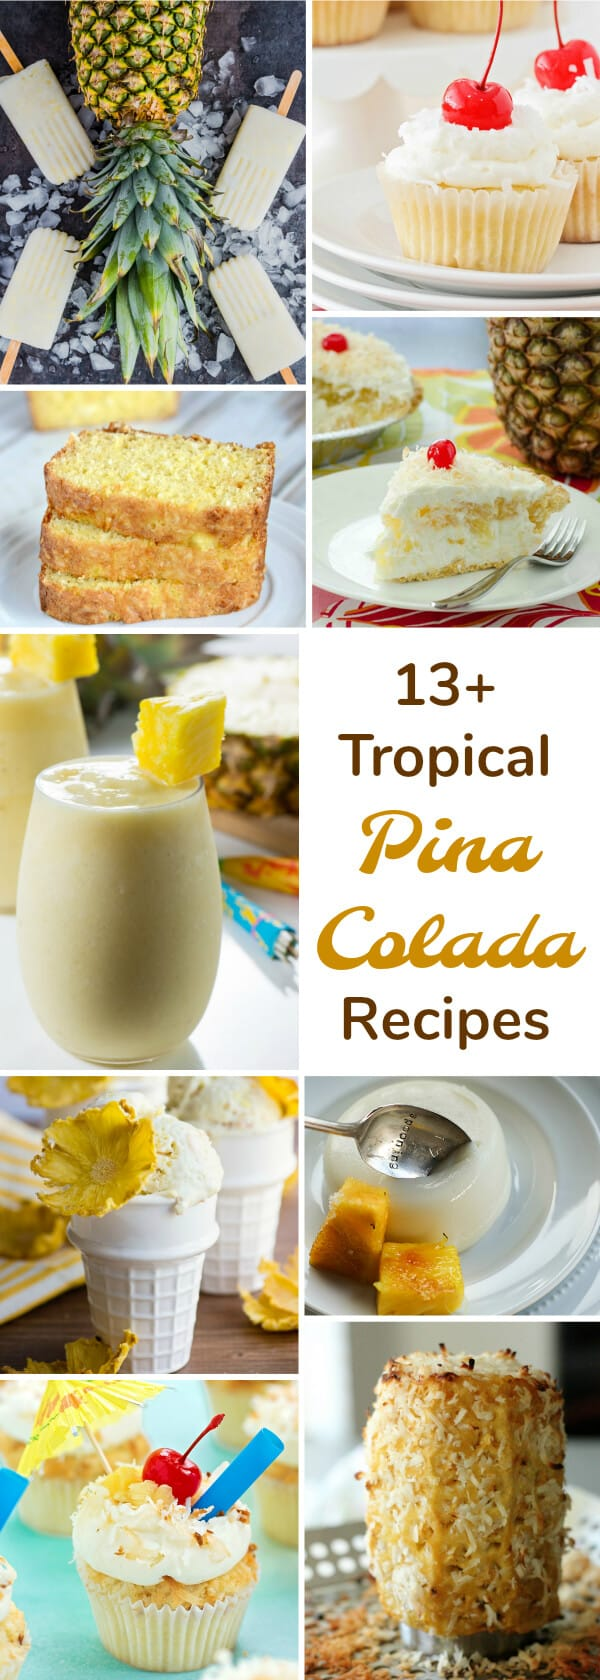 thirteen pina colada recipes